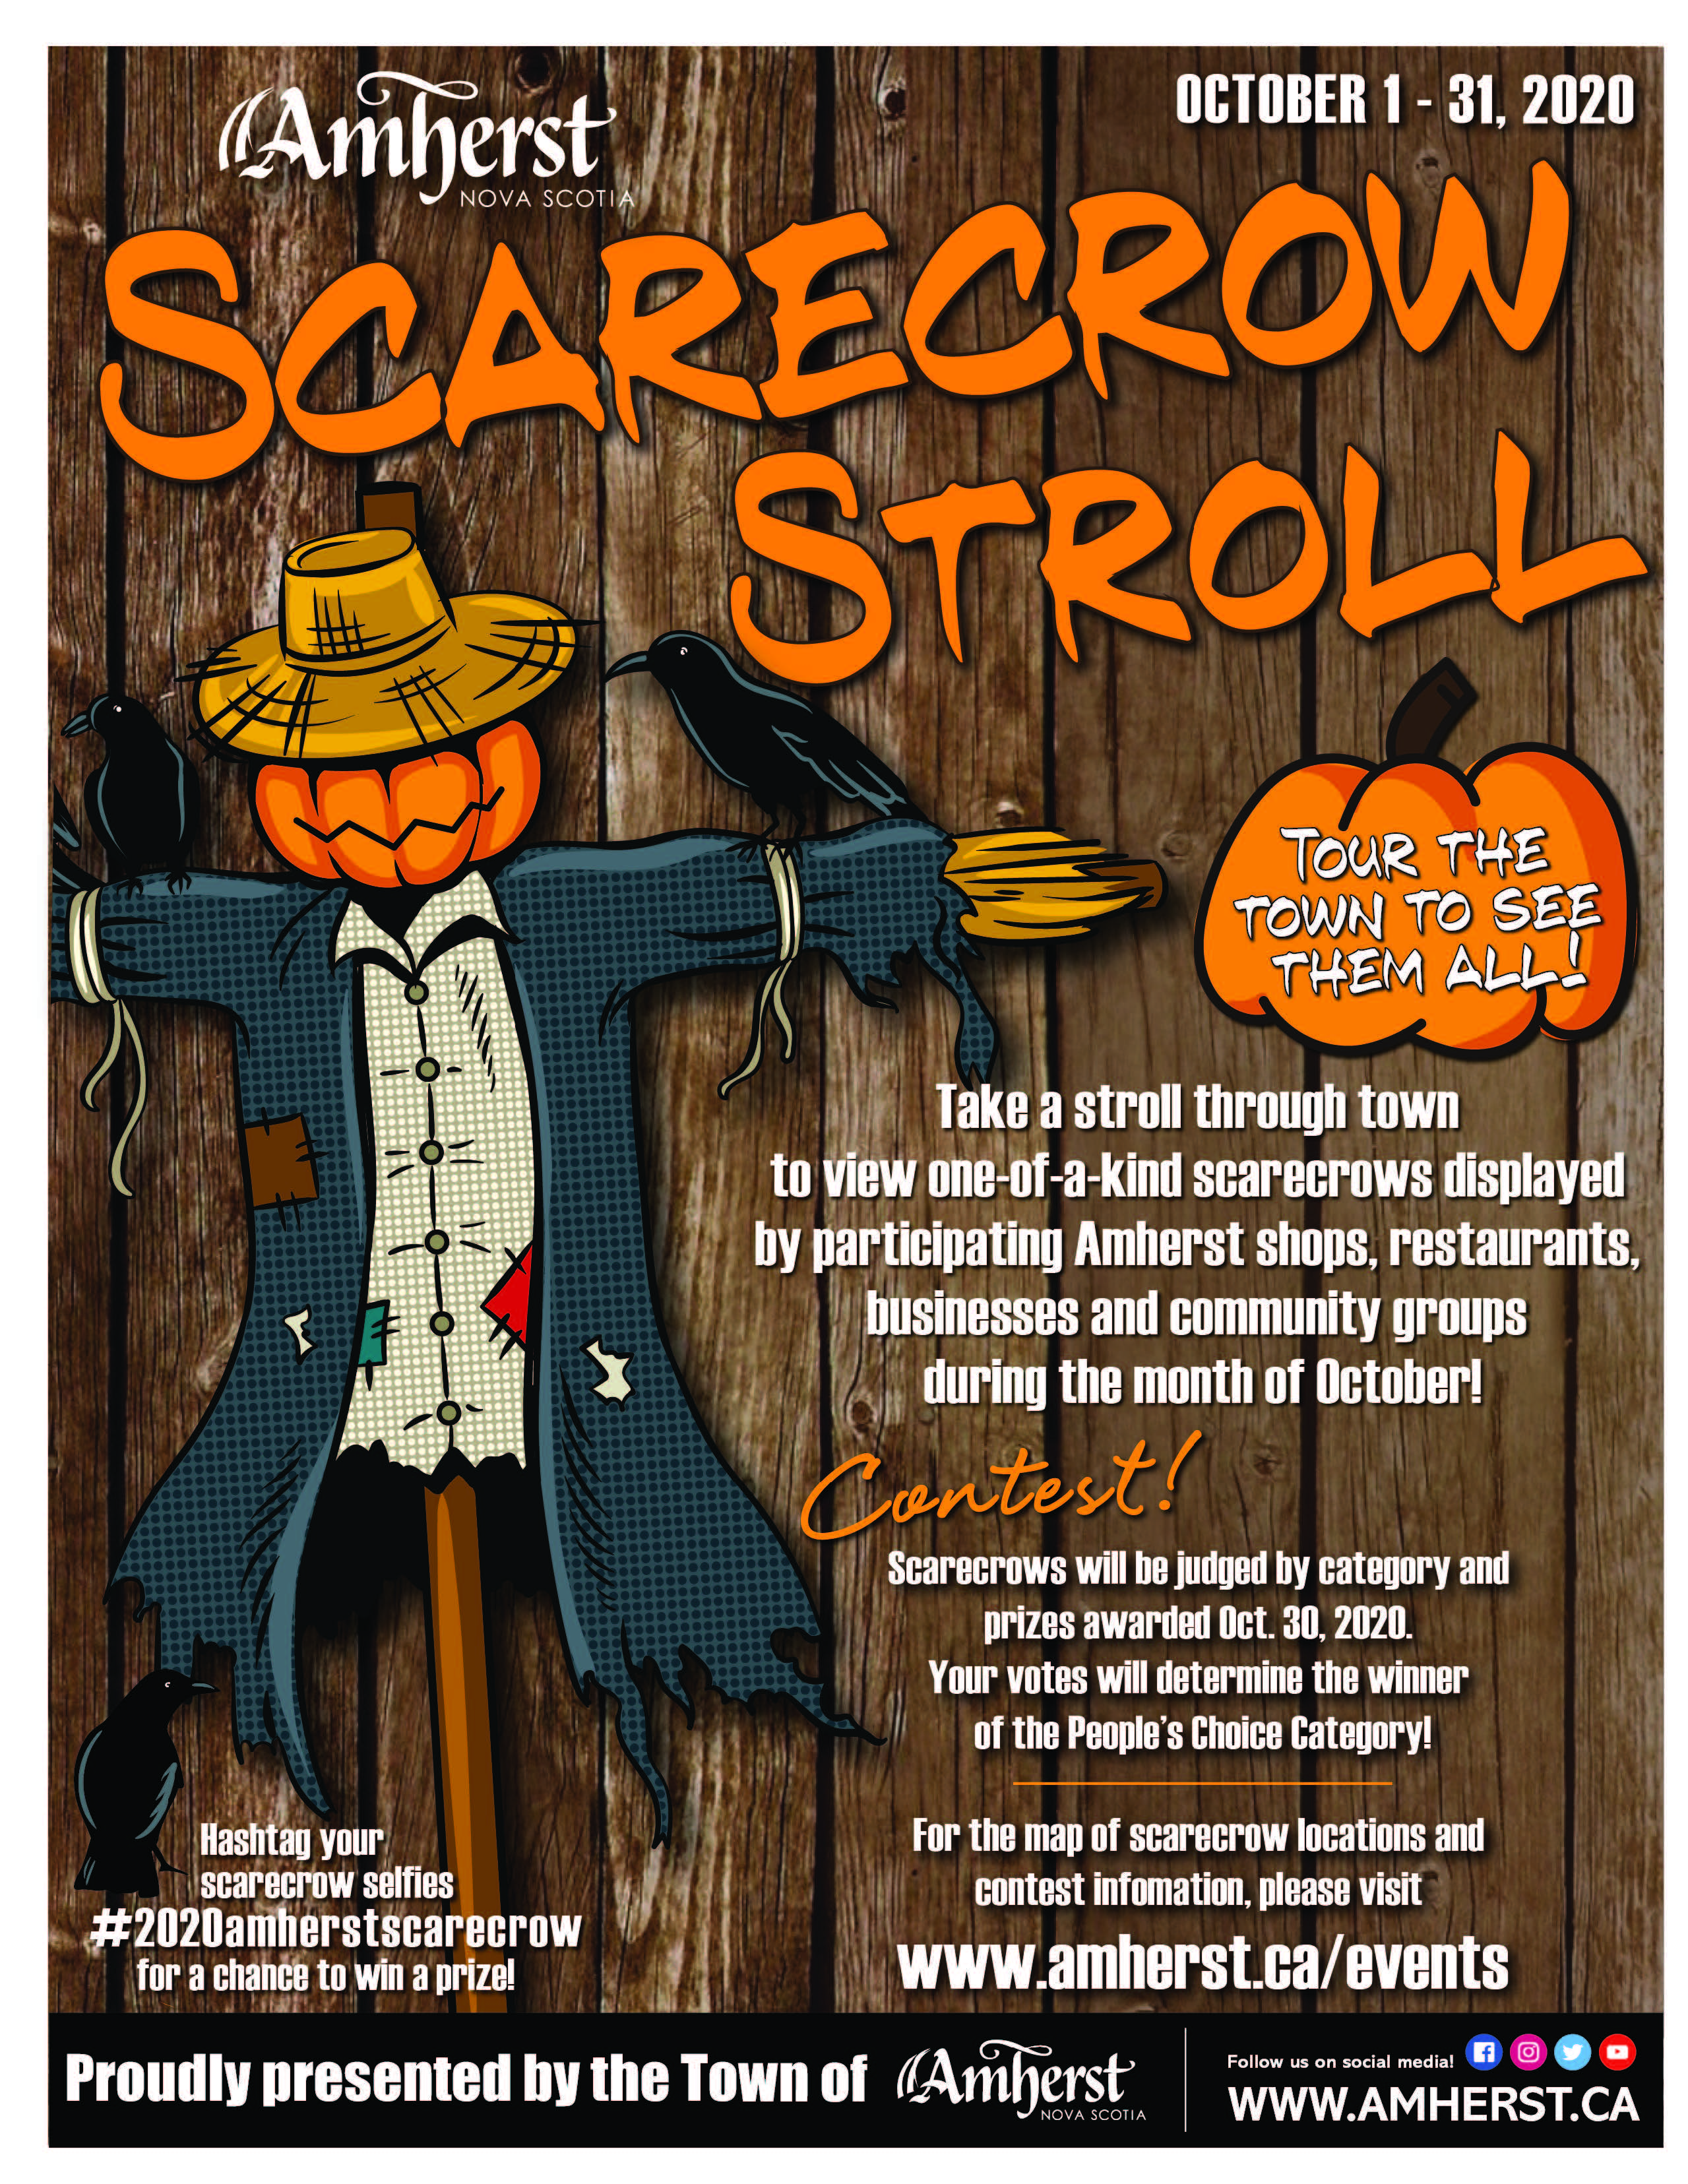 2020 ScarecrowStroll and map Page 1